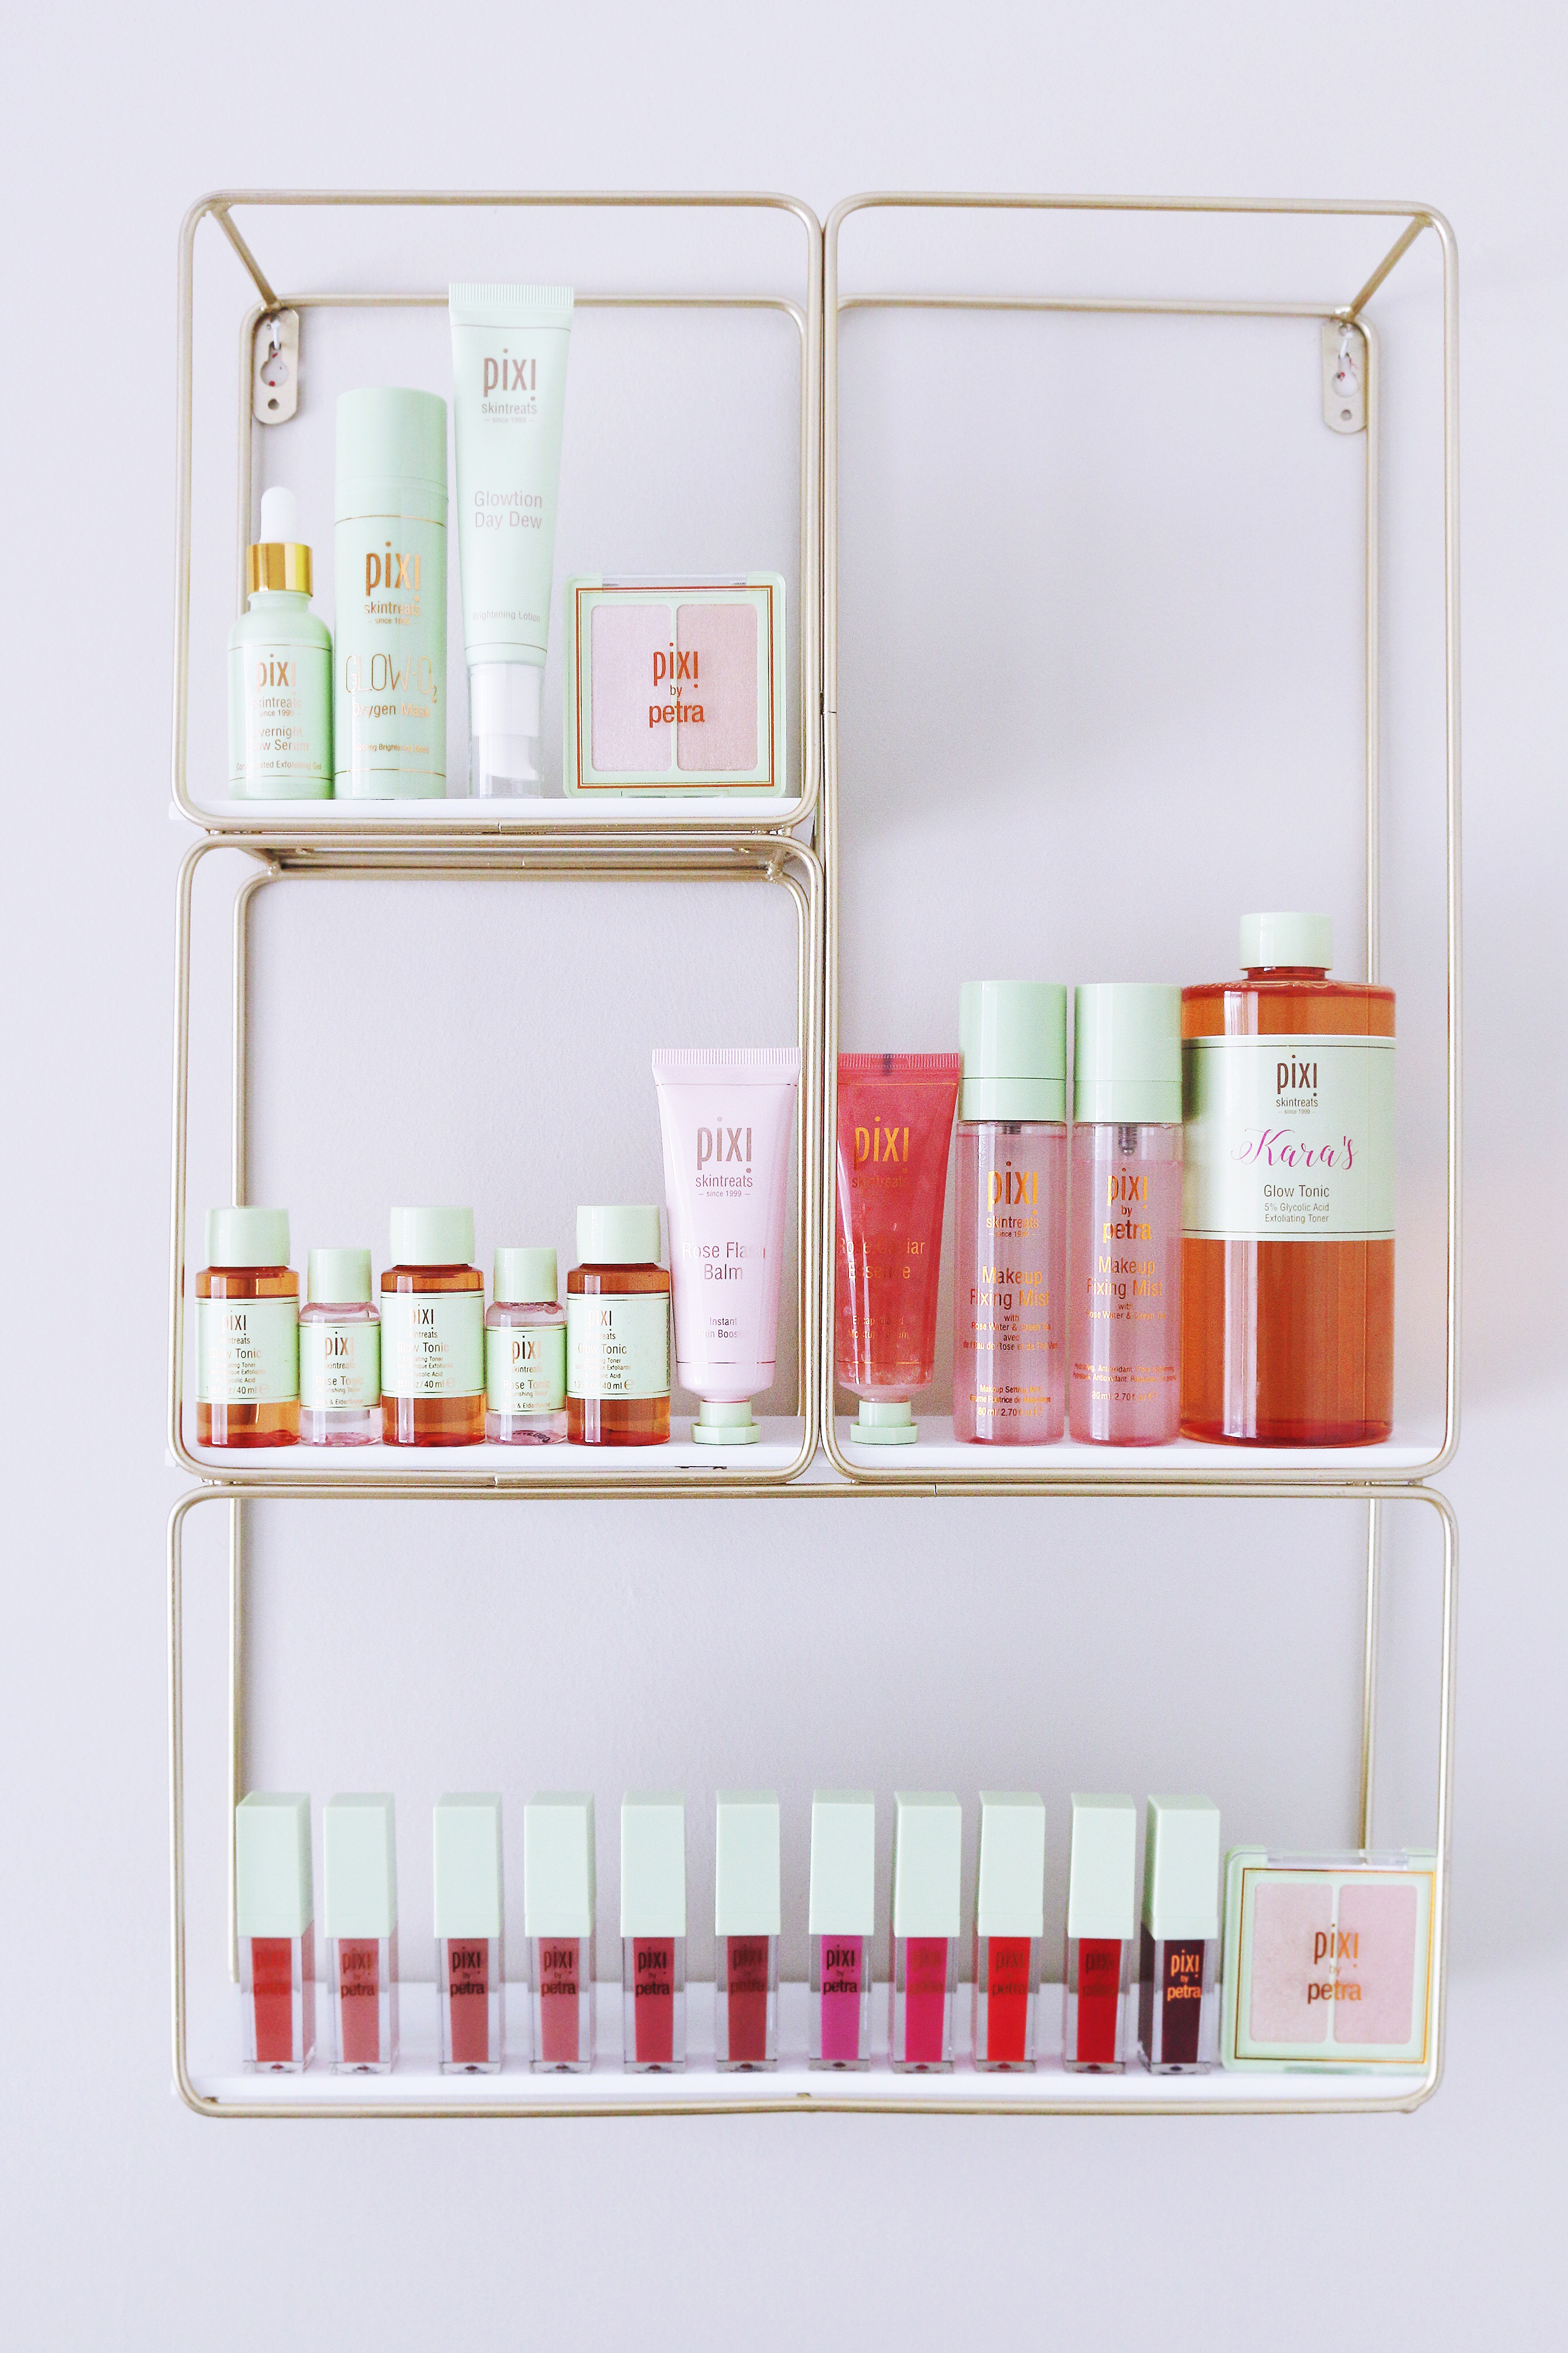 My Favorite Pixi beauty skincare and makeup products